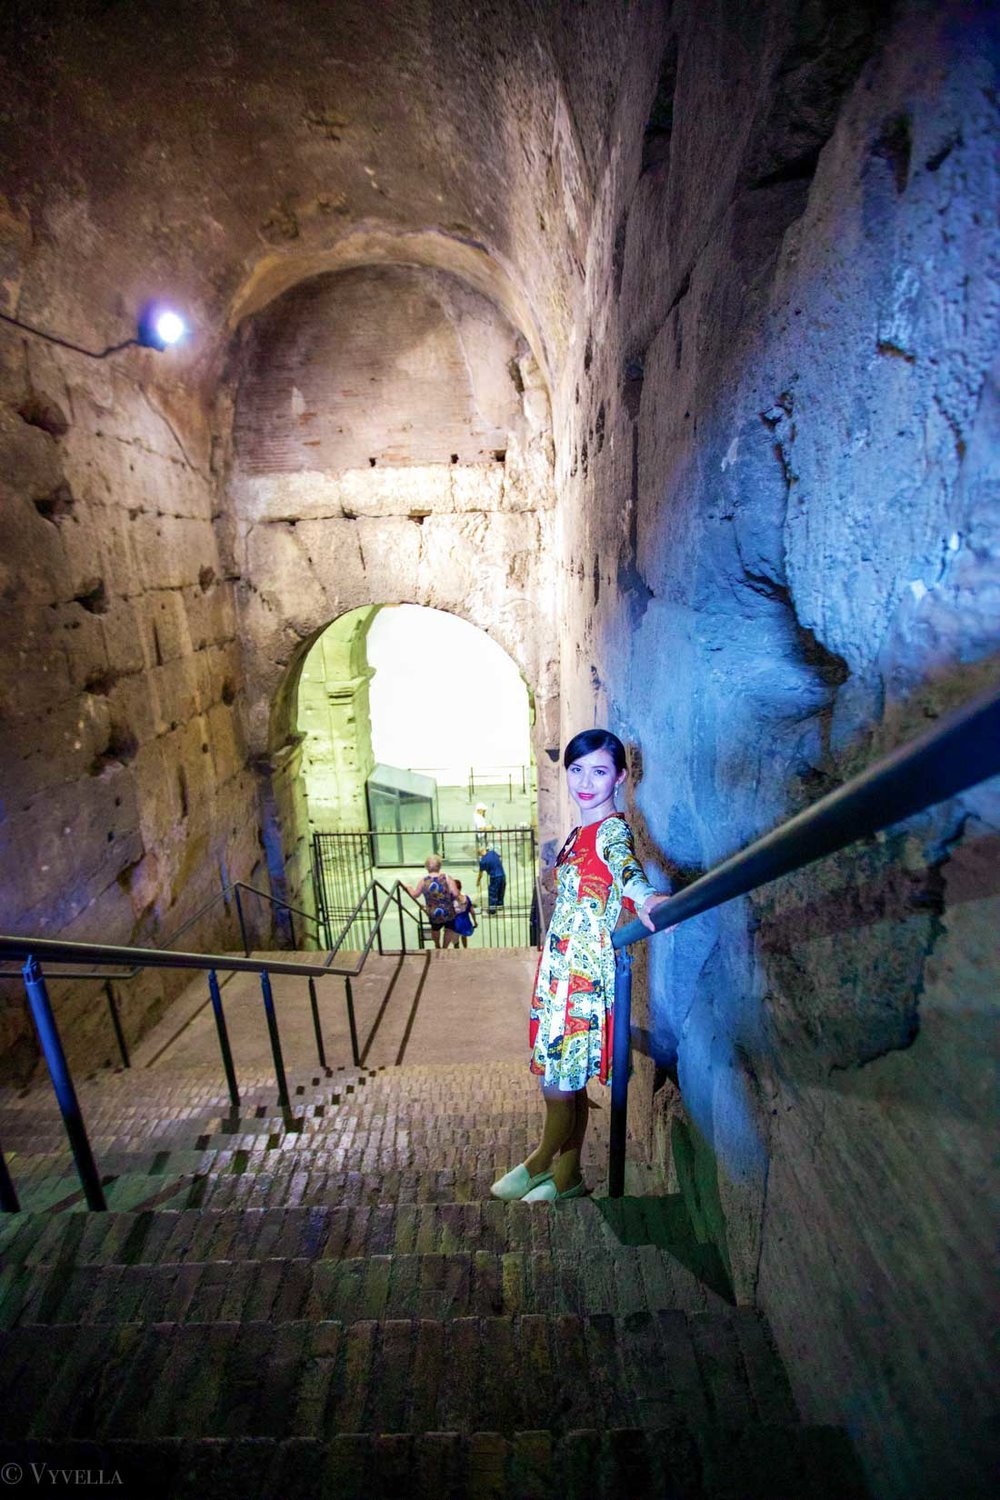 travel_a-look-inside-the-colosseum_14.jpg